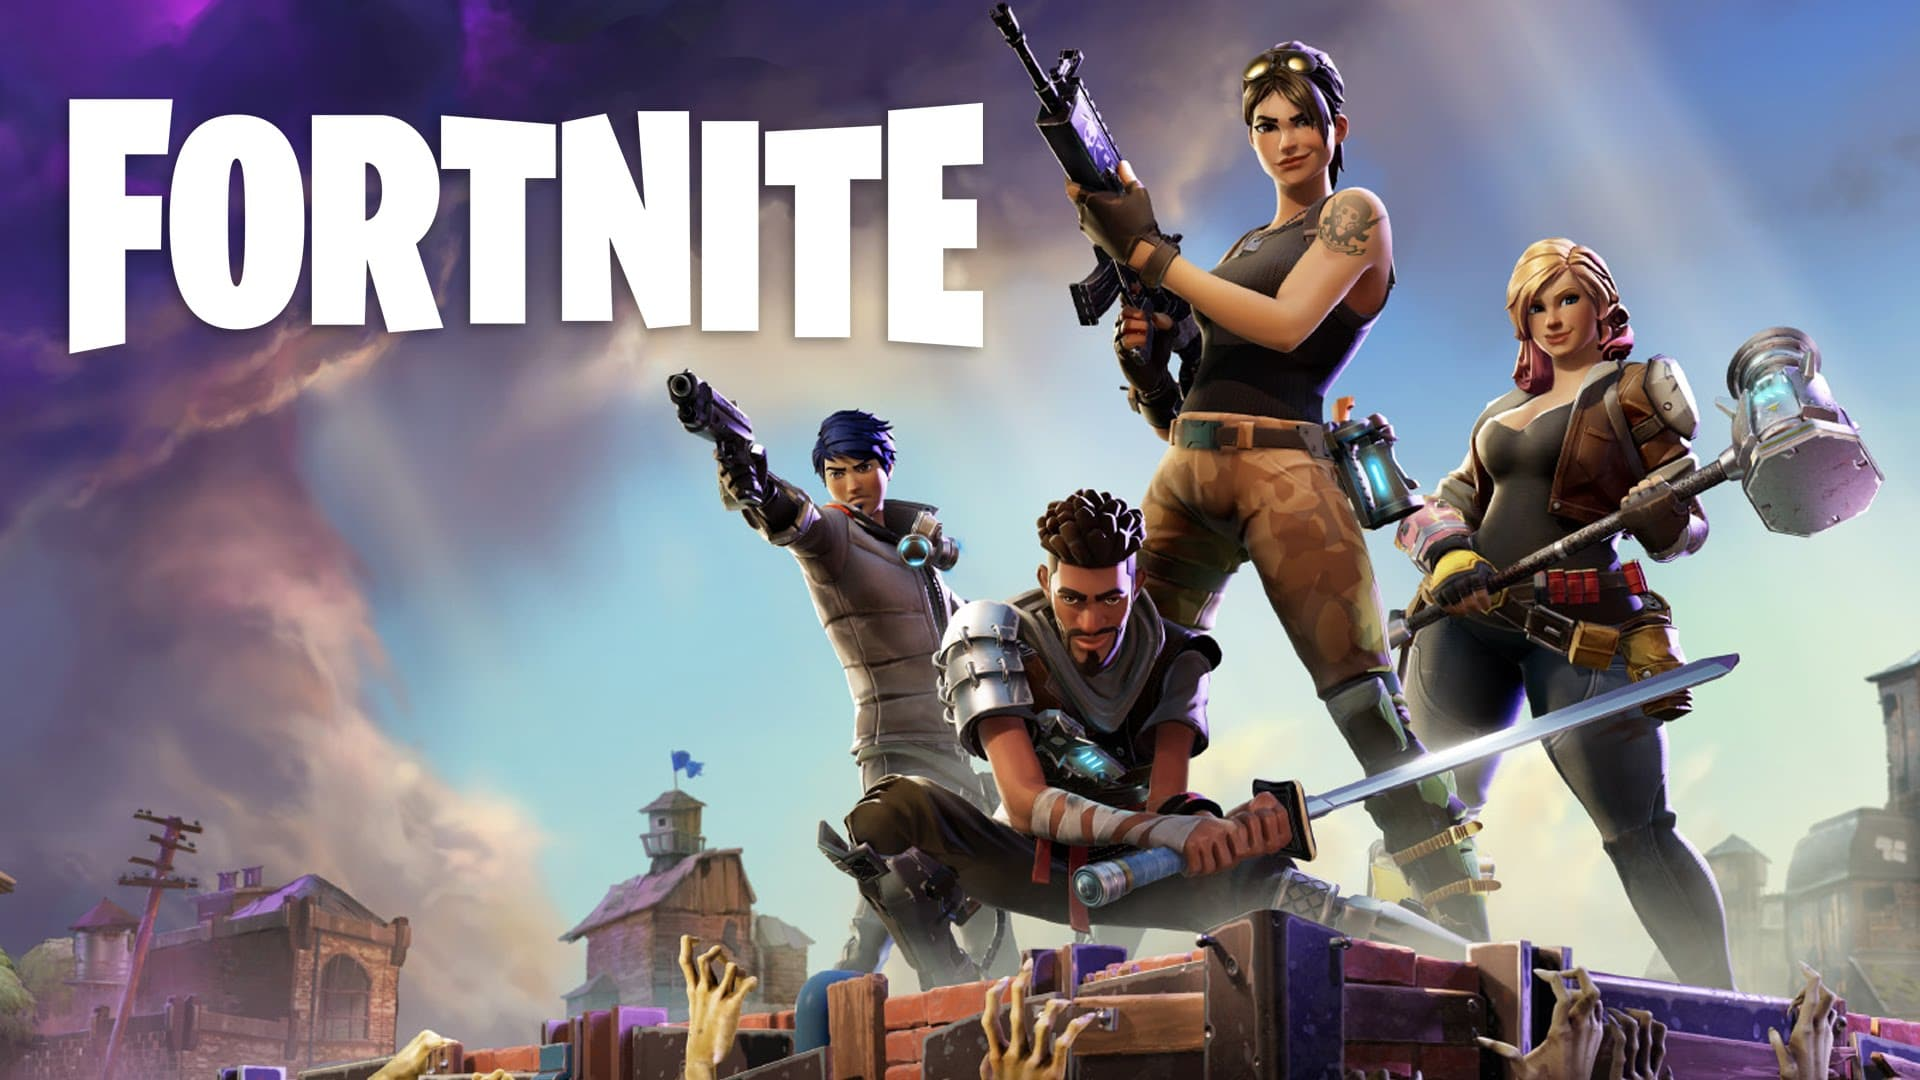 fortnight Android game